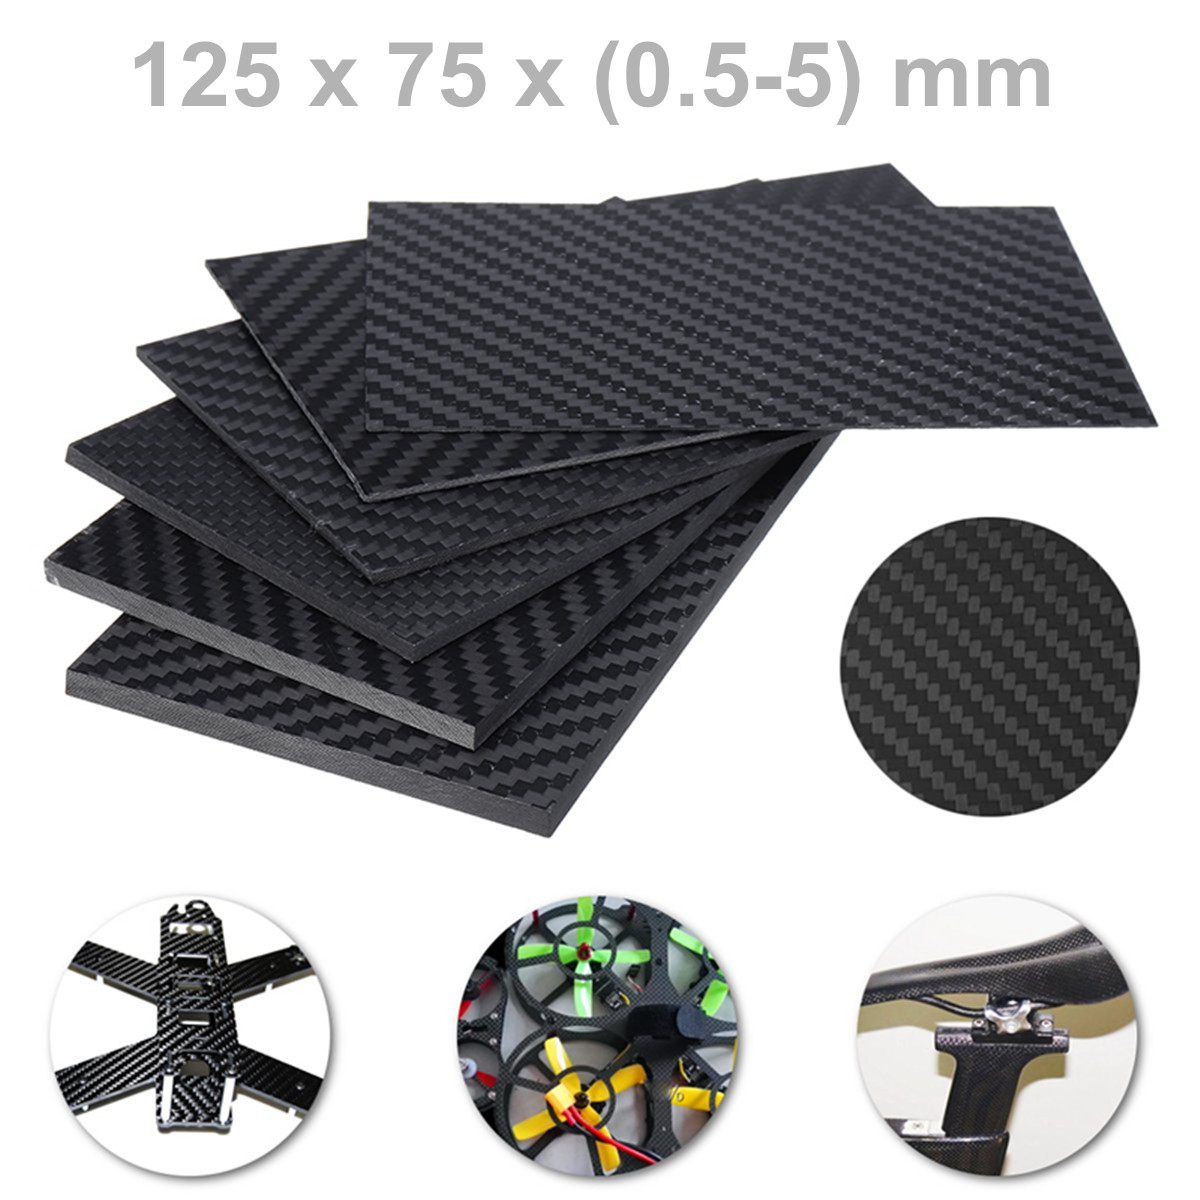 0.5-5MM 3K Matte Surface Twill Carbon Plate Panel Sheets High Composite Hardness Material Anti-UV Carbon Fiber Board 125X75 mm0.5-5MM 3K Matte Surface Twill Carbon Plate Panel Sheets High Composite Hardness Material Anti-UV Carbon Fiber Board 125X75 mm